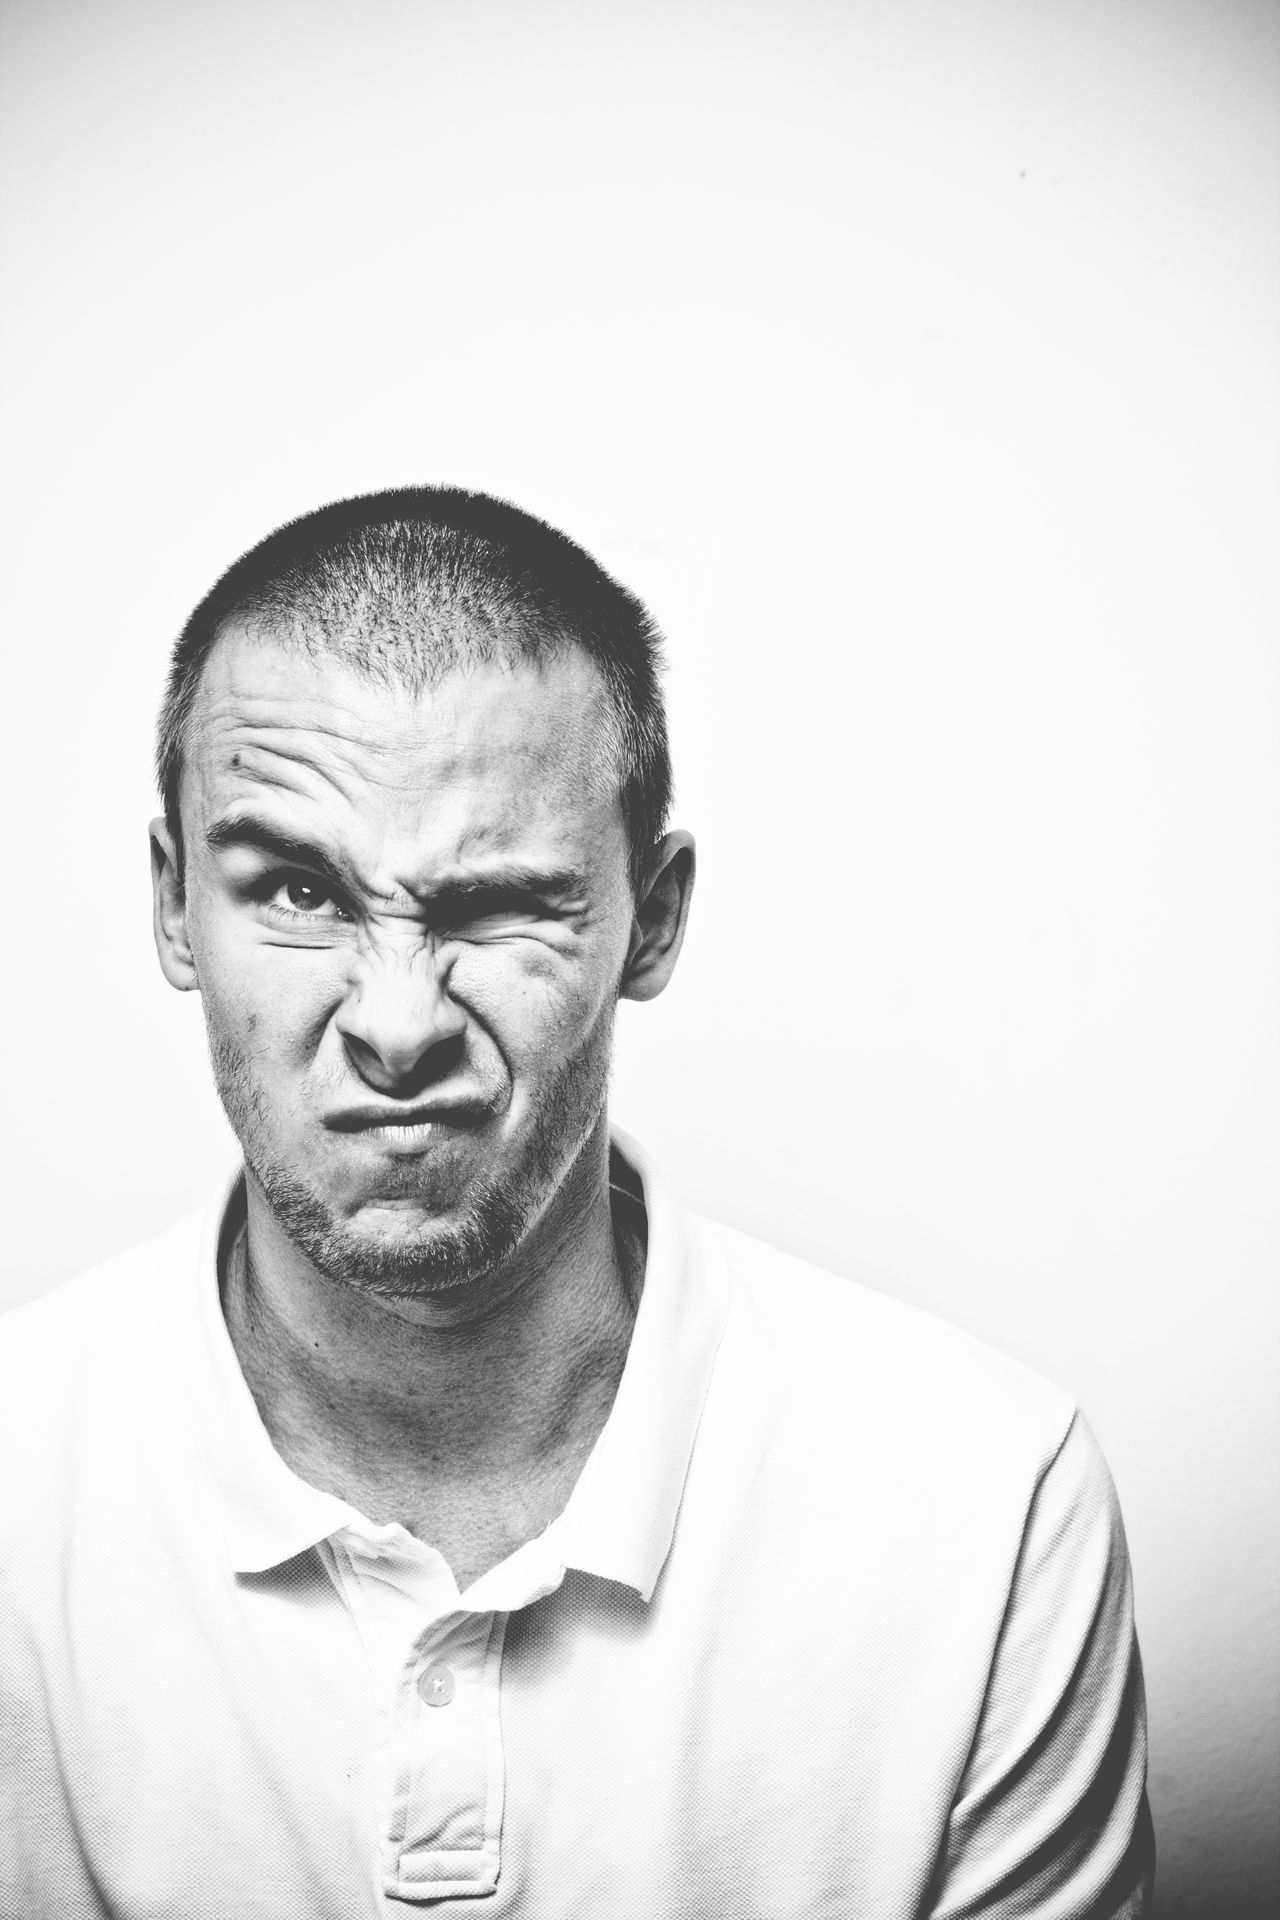 Adult Close-up Day Front View Funny Faces Indoors  Looking At Camera Mature Adult Monochrome One Person People Portrait Real People Self Portrait Selfie Senior Adult Studio Shot White Background